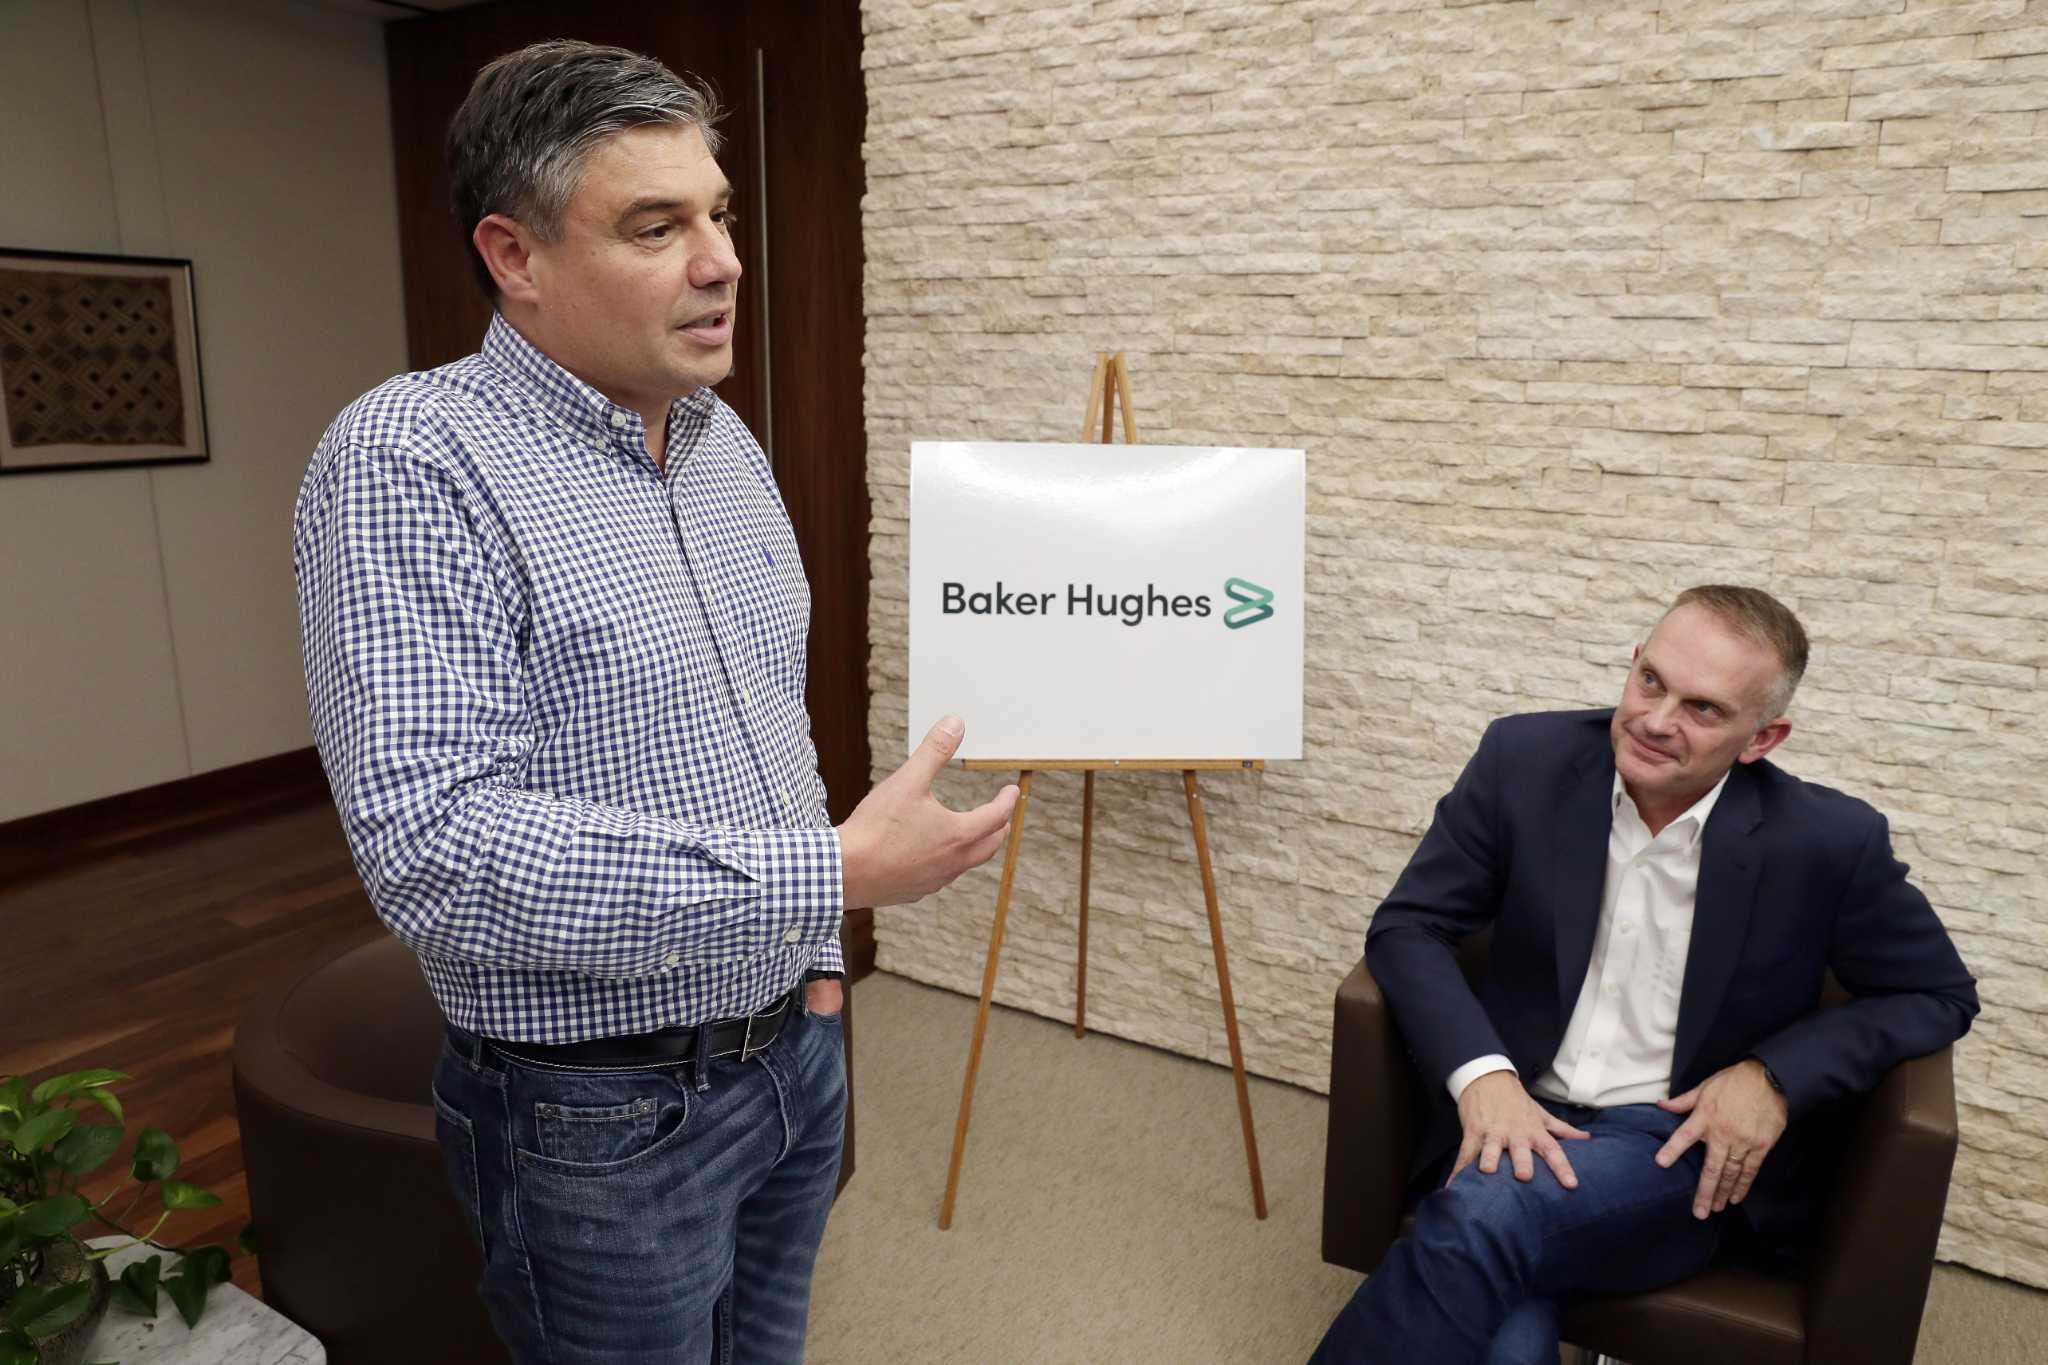 Baker Hughes name change becomes official